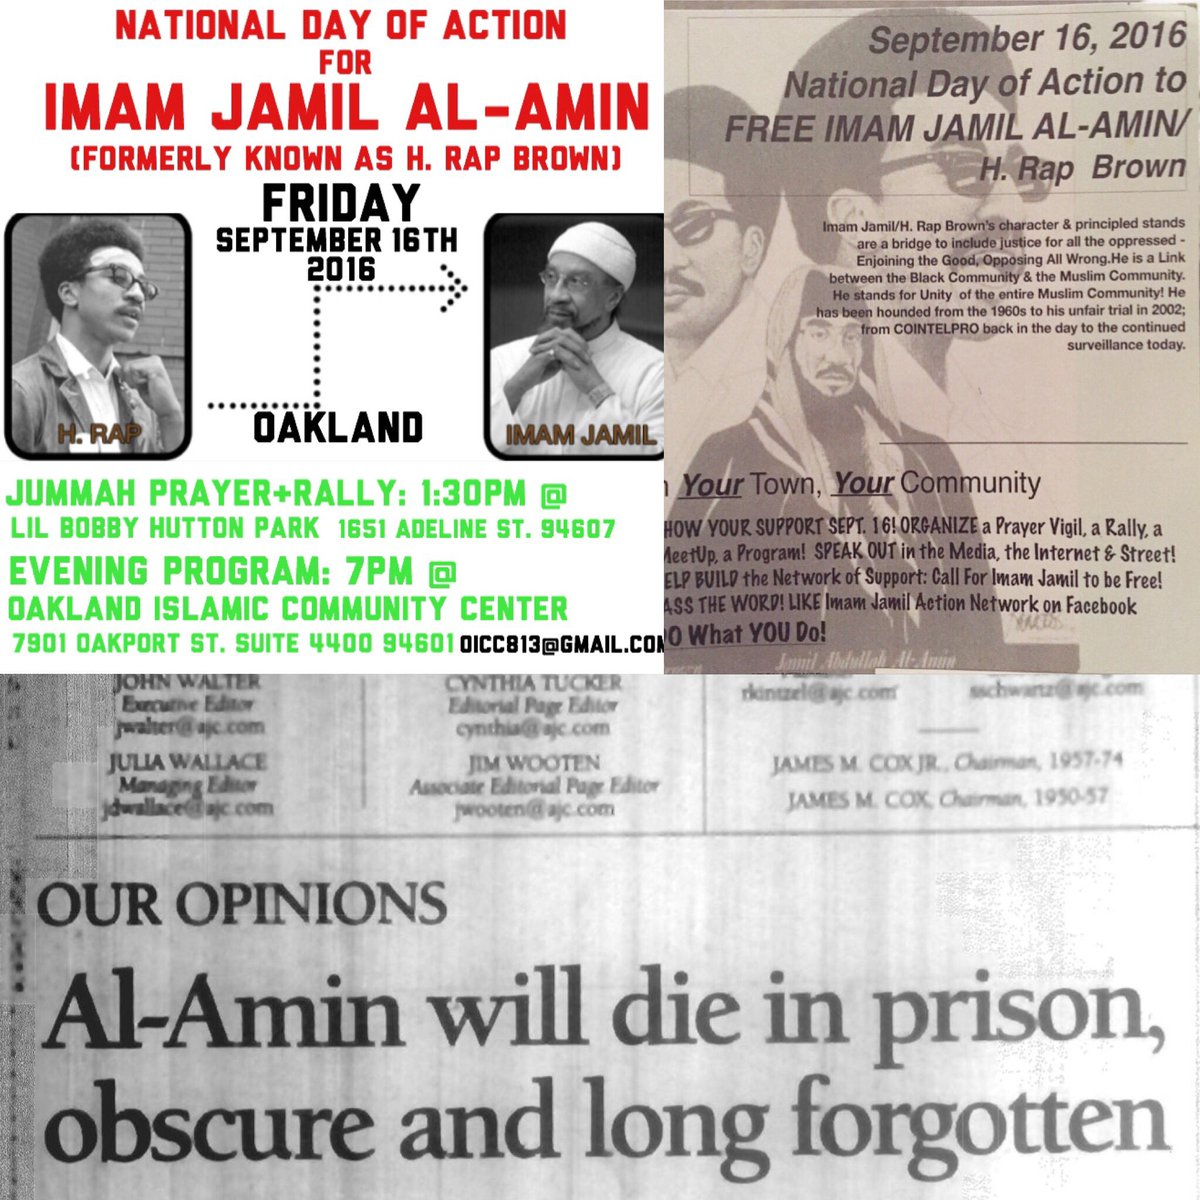 National Day of Action for Imam Jamil Al-Amin (H. Rap Brown) @ Lil Bobby Hutton Park | Oakland | California | United States